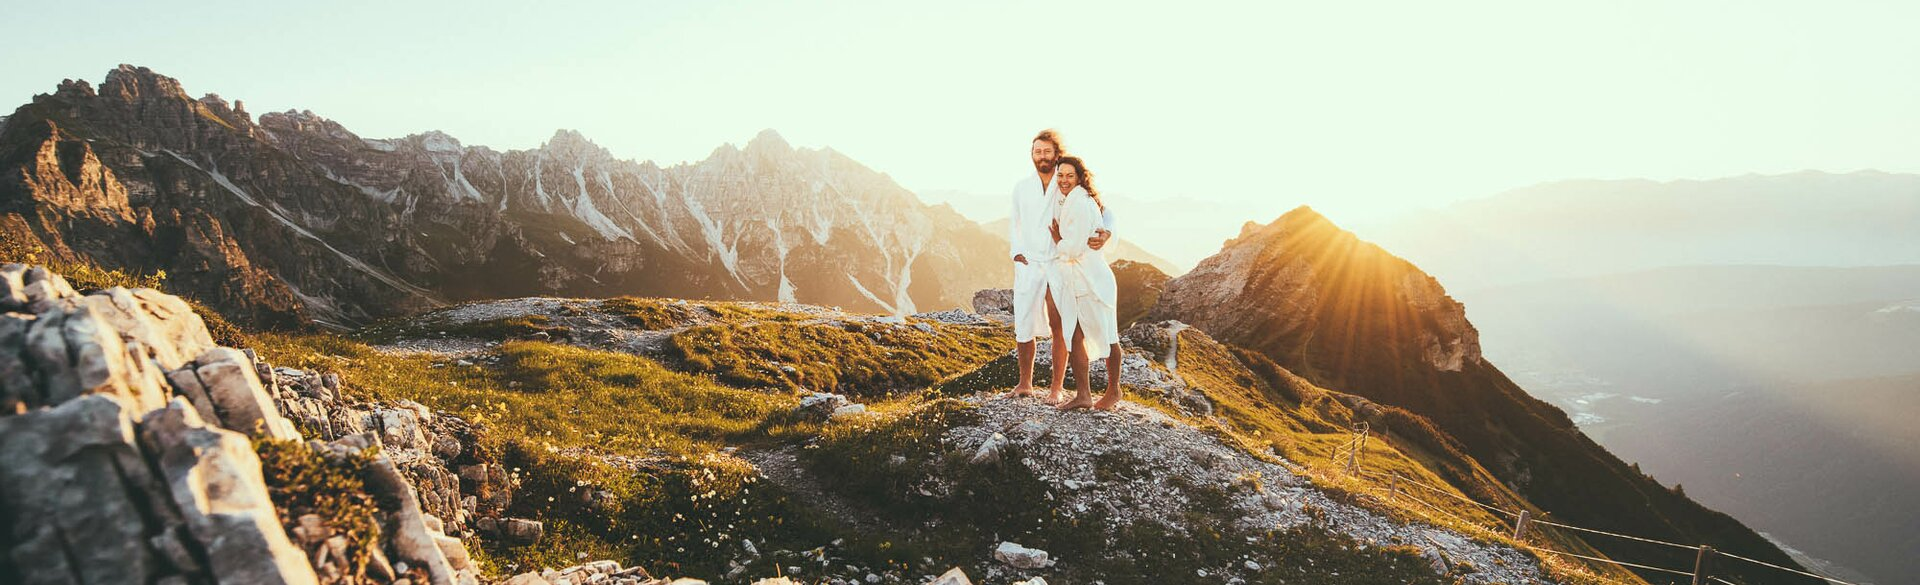 Wellnessurlaub in Südtirol & Wellness in Österreich |Best Alpine Wellness Hotels